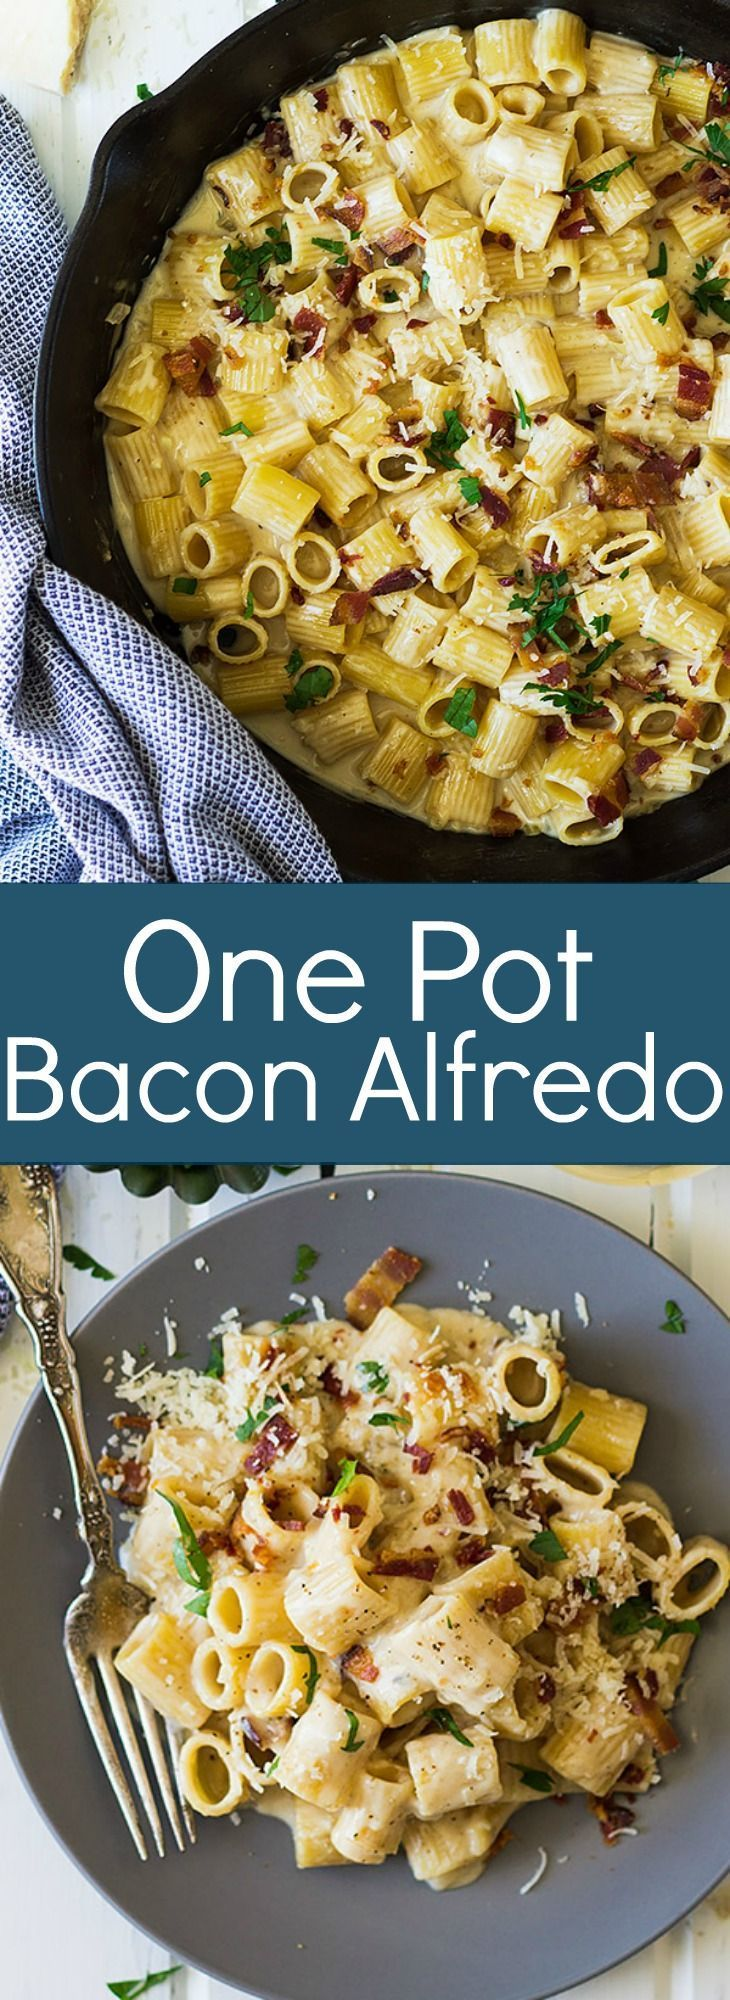 This One Pot Bacon Alfredo is a quick and easy weeknight meal that's full of flavor!   http://www.countrysidecravings.com